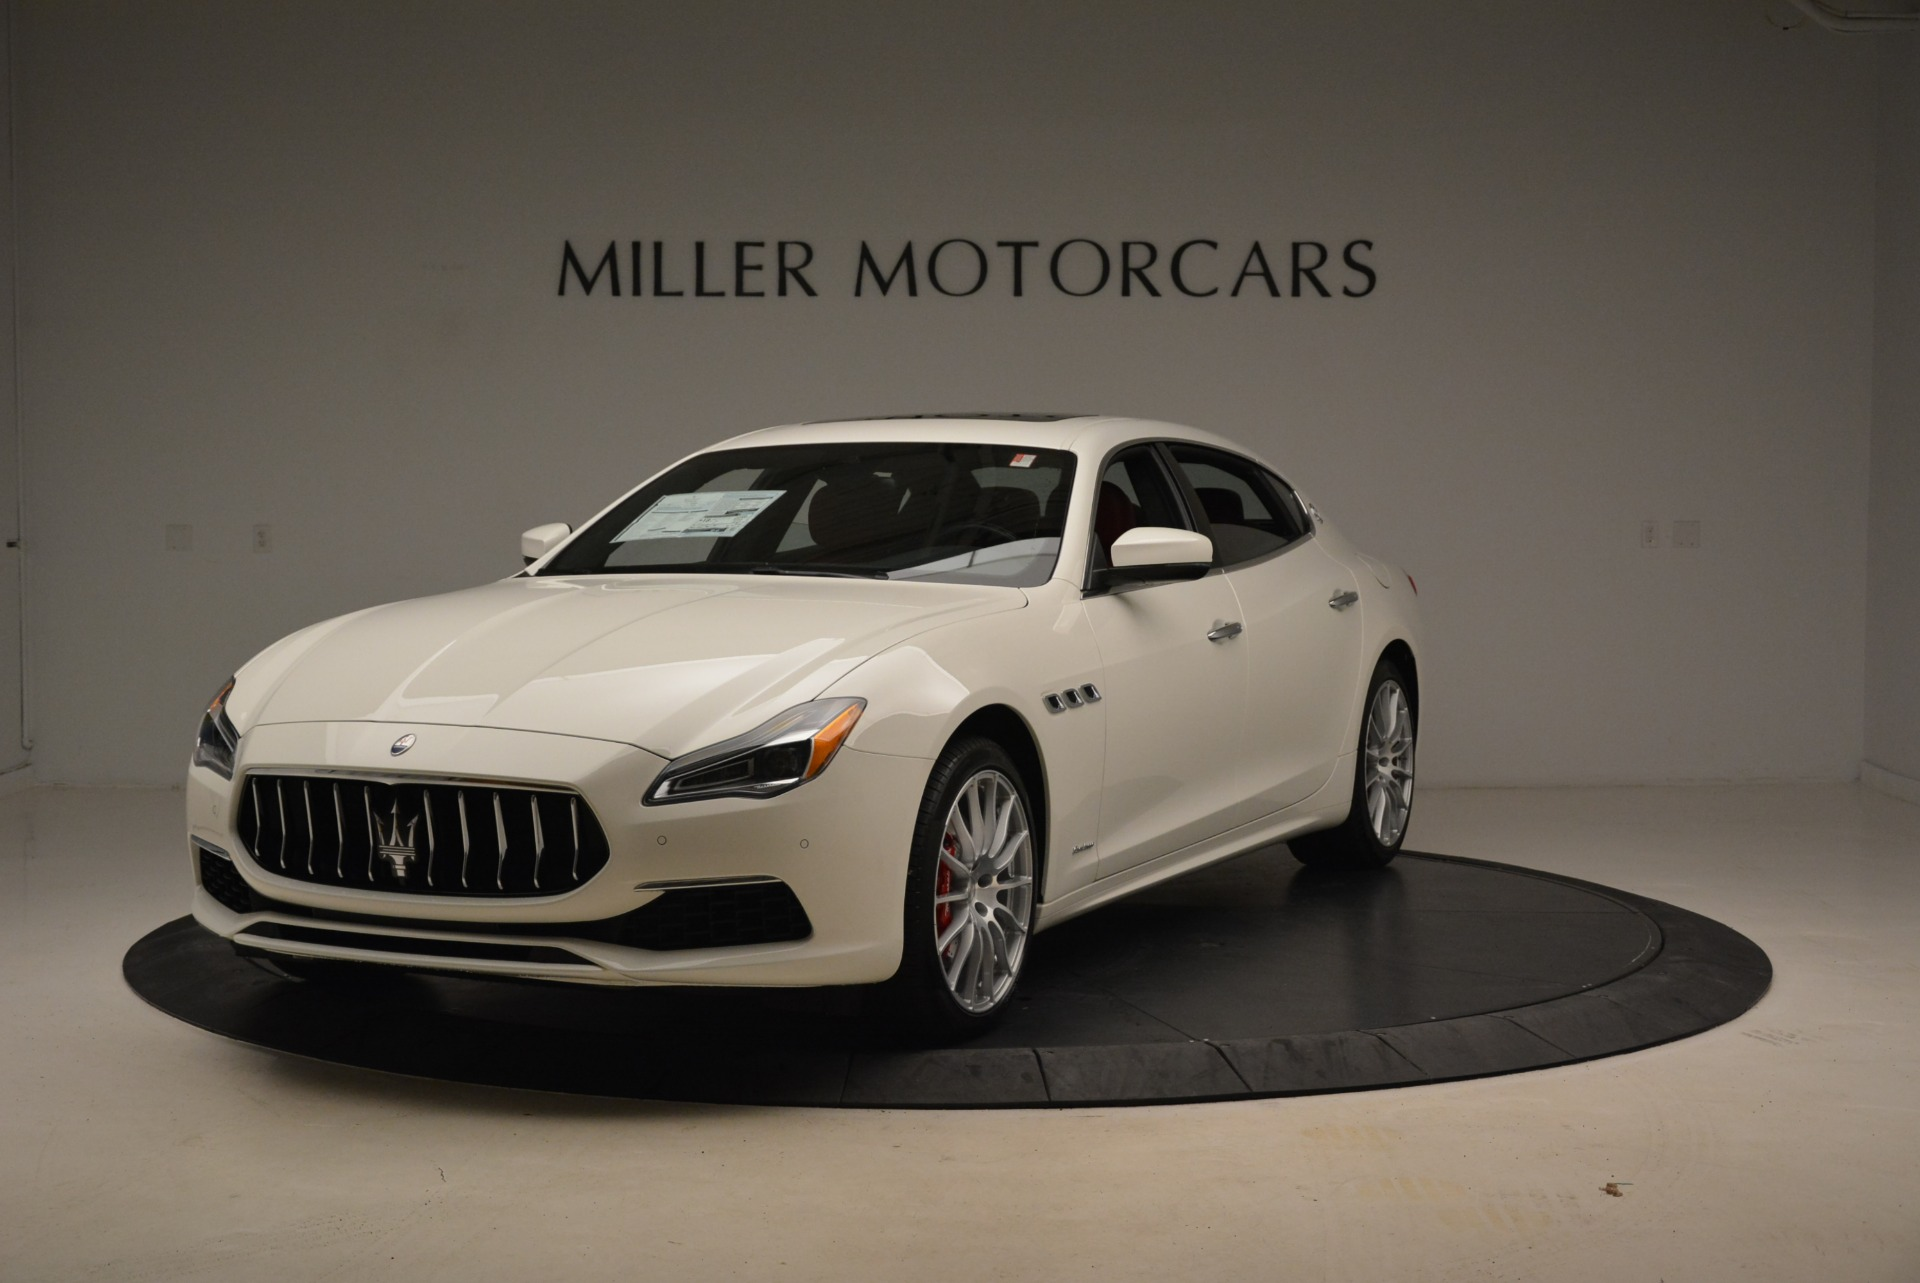 New 2018 Maserati Quattroporte S Q4 GranLusso For Sale In Westport, CT 2085_main